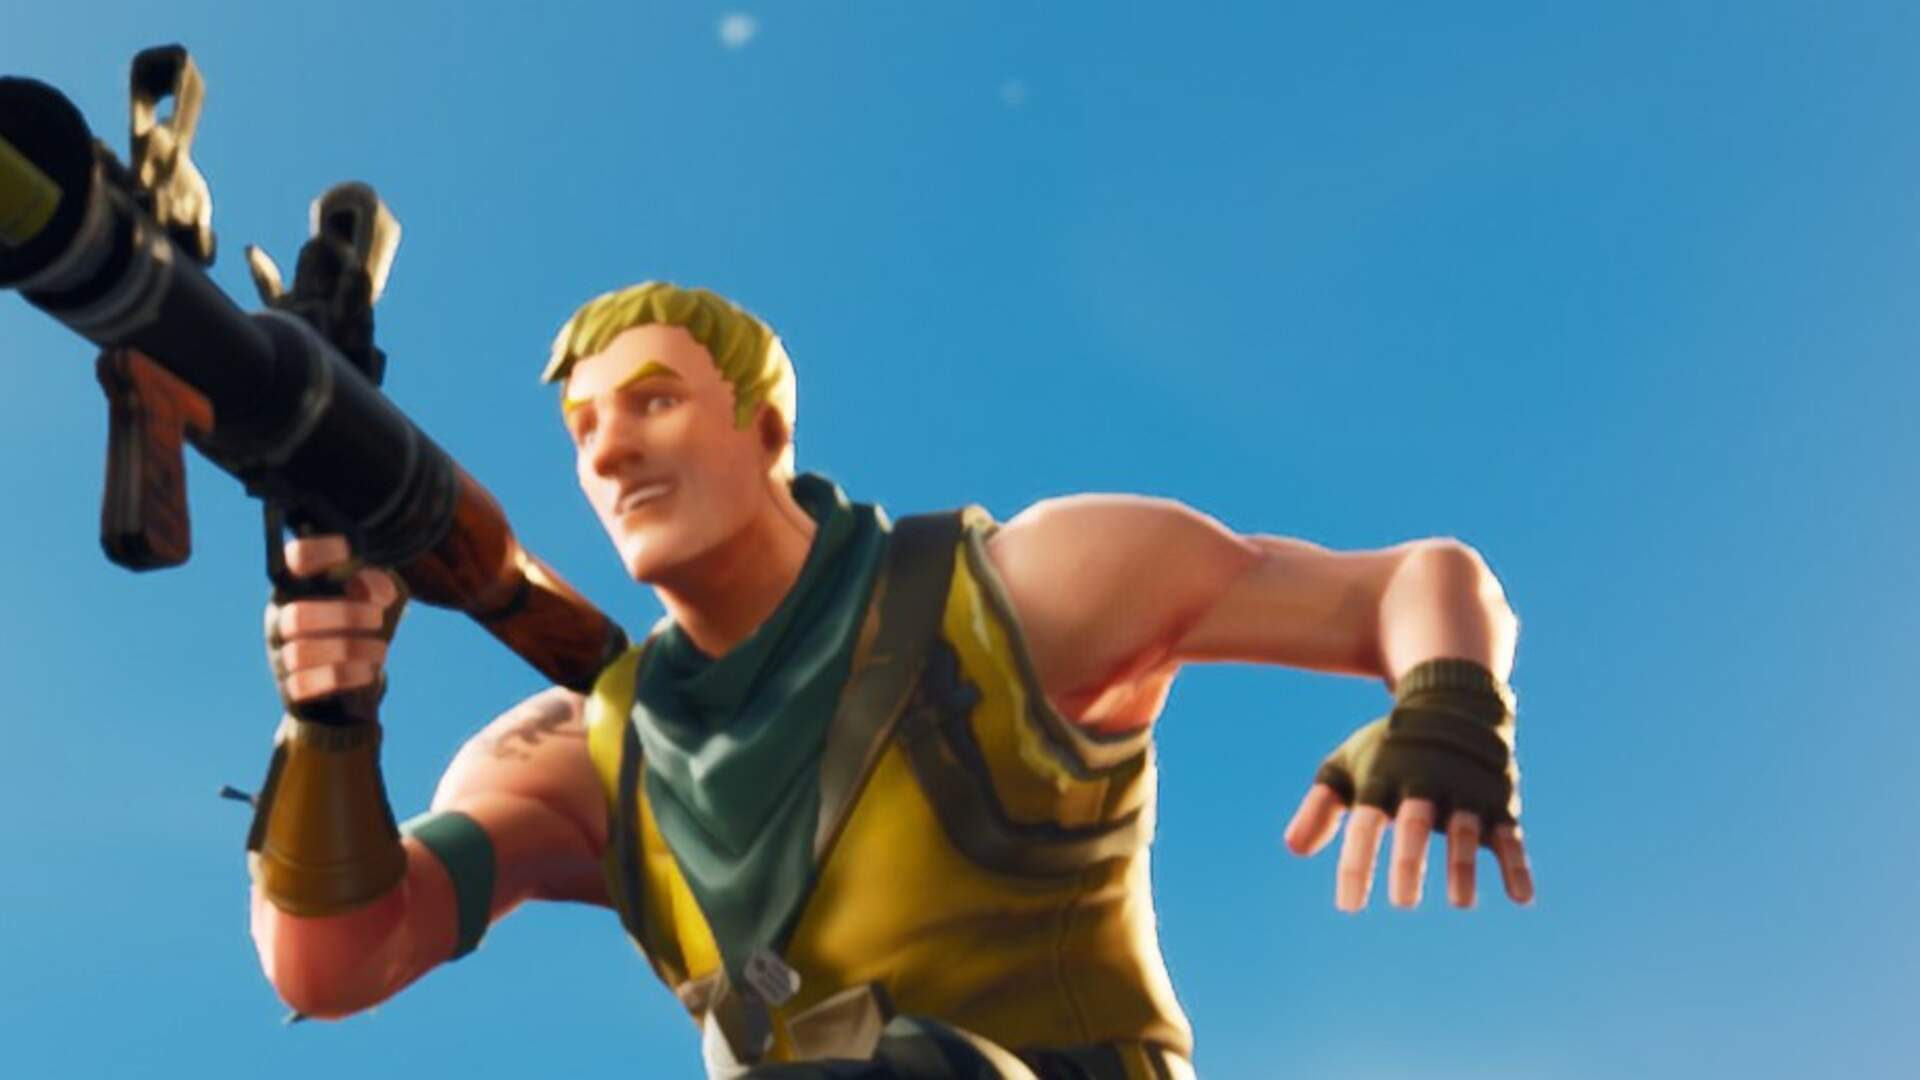 Fortnite Reddit Wants Jonesy as a Super Smash Bros. Ultimate Character